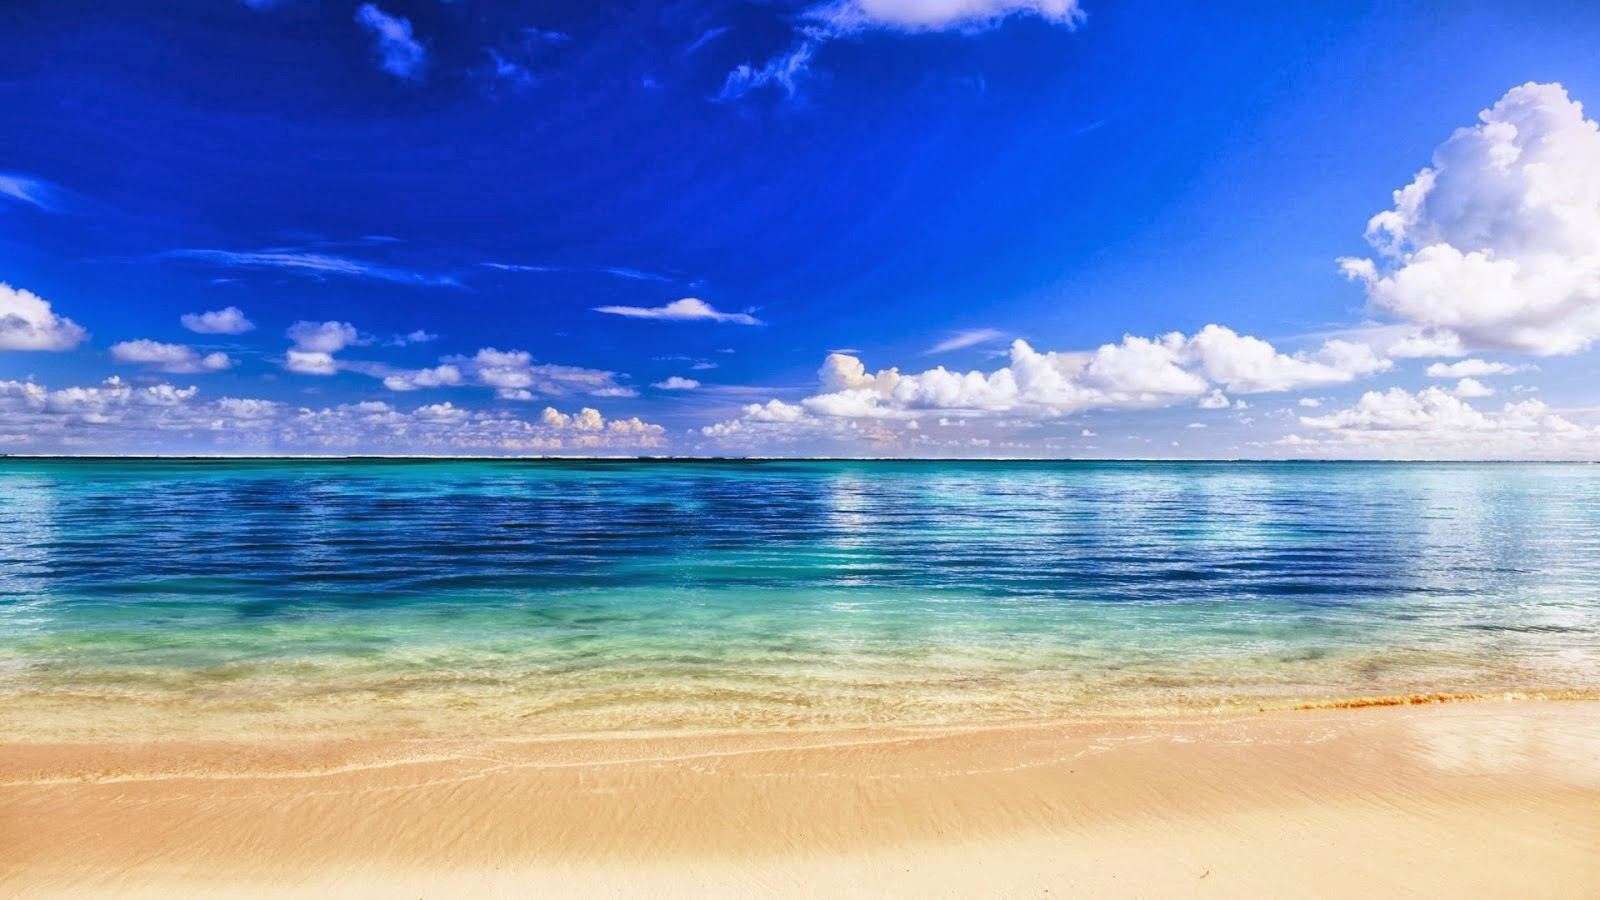 hd wallpapers 1080p blue water white sand beach hd wallpapers 1080p 1600x900